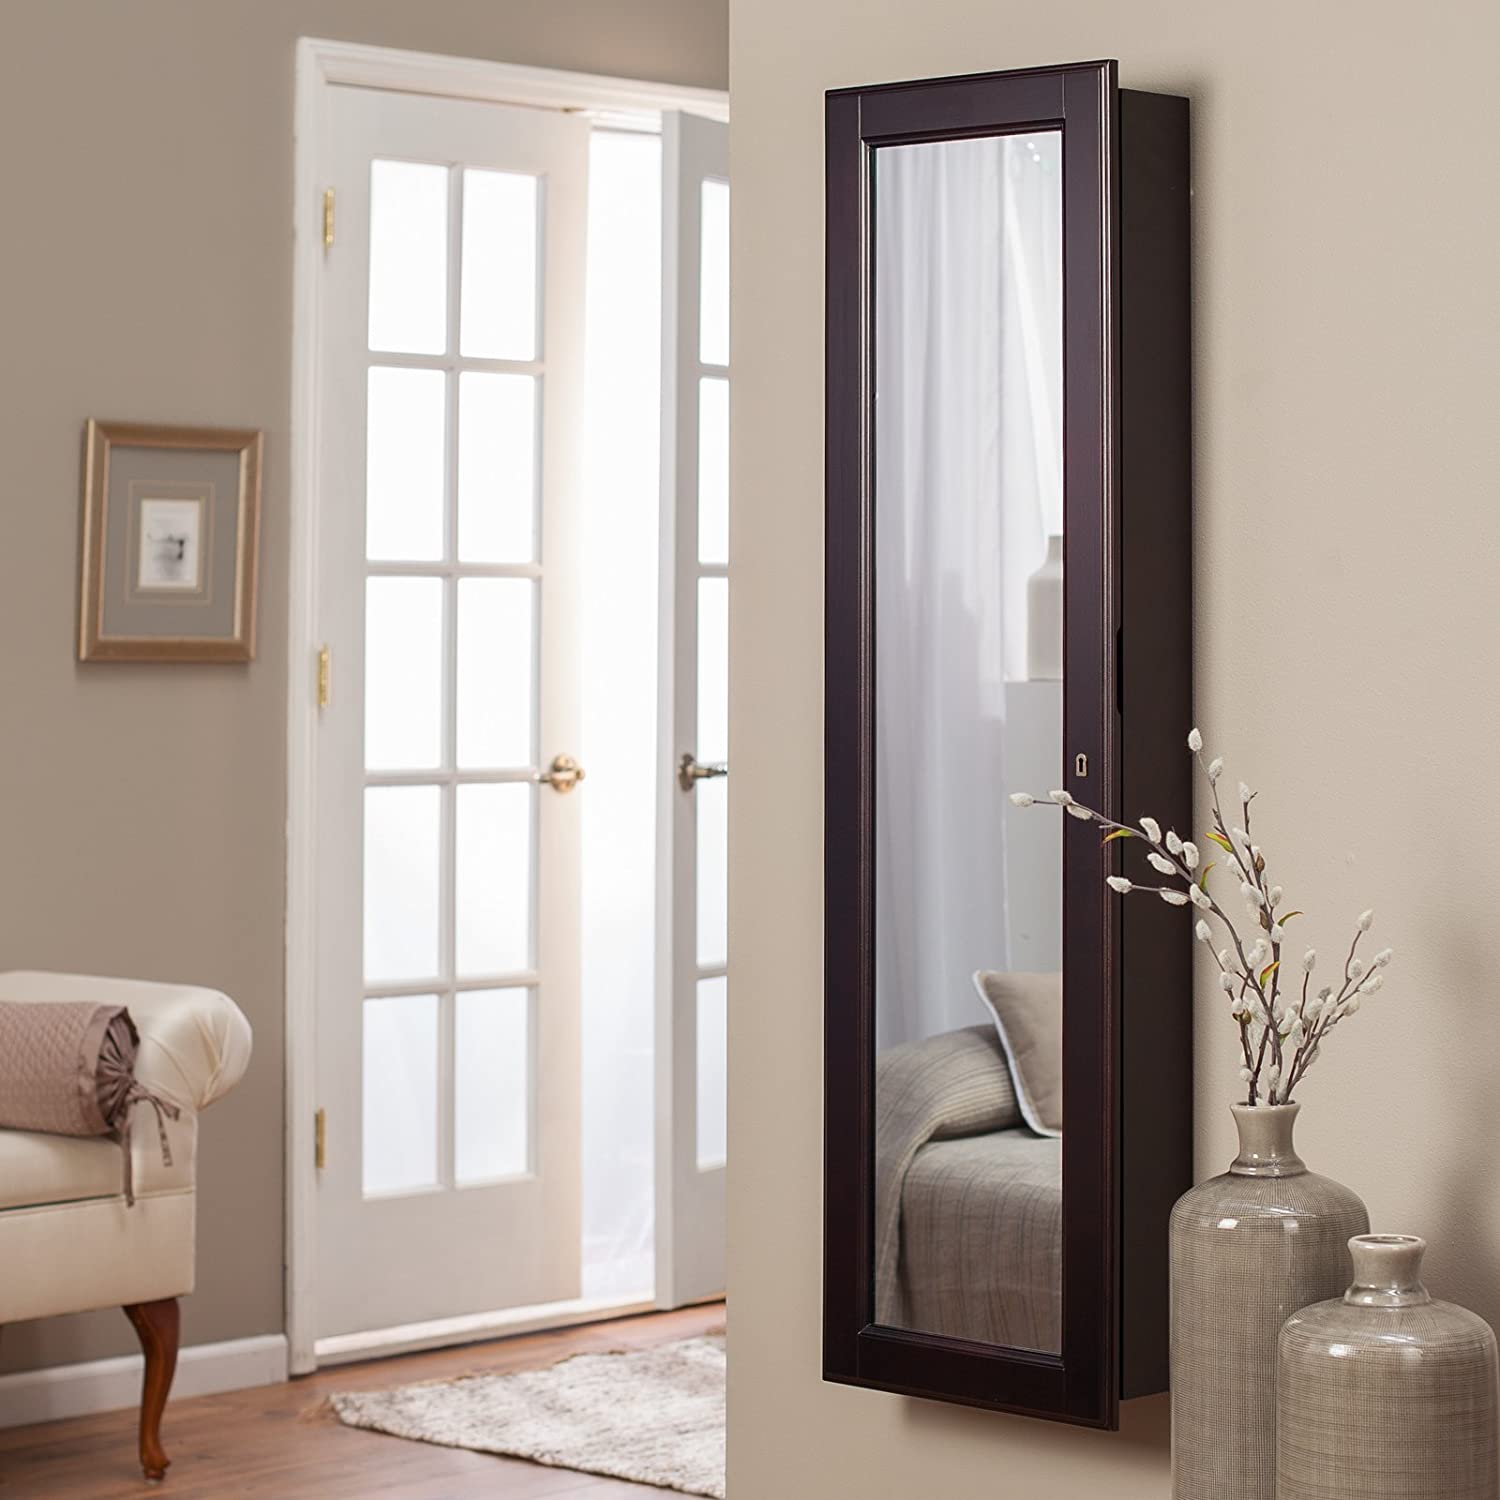 Ordinaire Amazon.com: Belham Living Lighted Wall Mount Locking Jewelry Armoire      14.5W X 50H In.: Home U0026 Kitchen